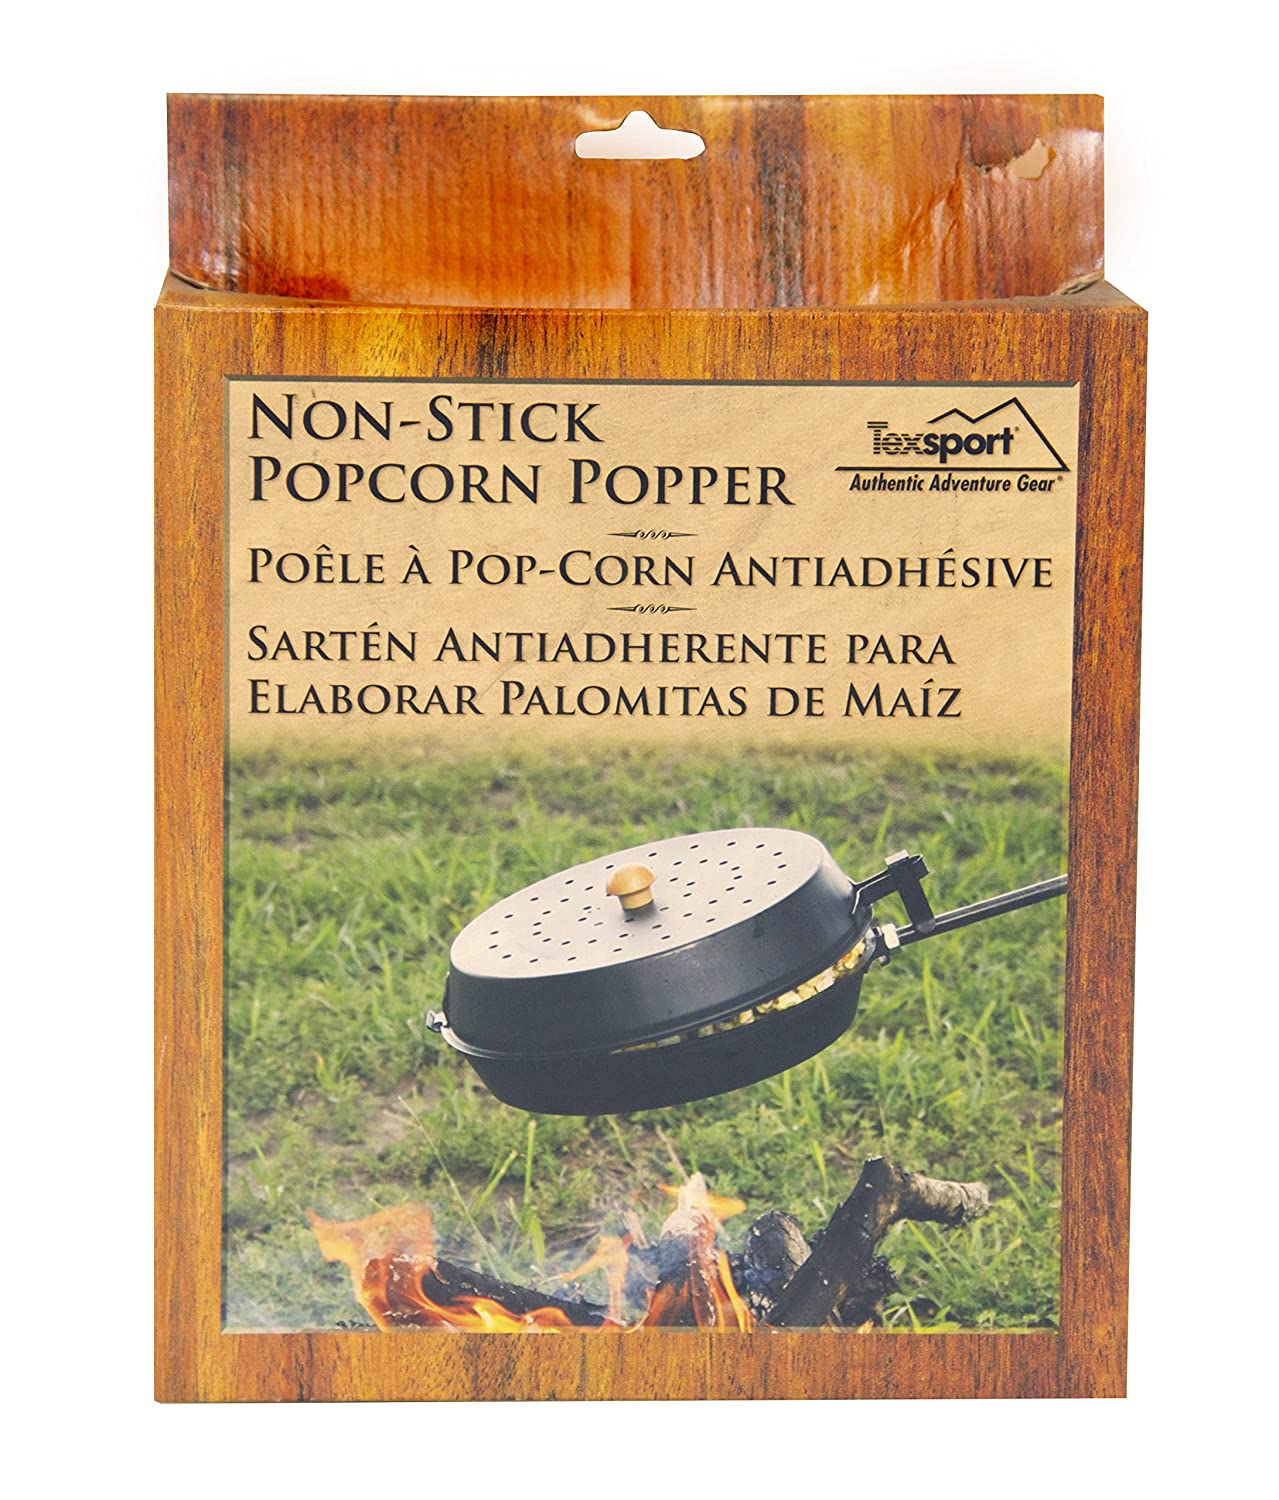 Amazon.com : Texsport Non-Stick Popcorn Popper for Campfire Fire pit Cooking : Campfire Cookware : Sports & Outdoors